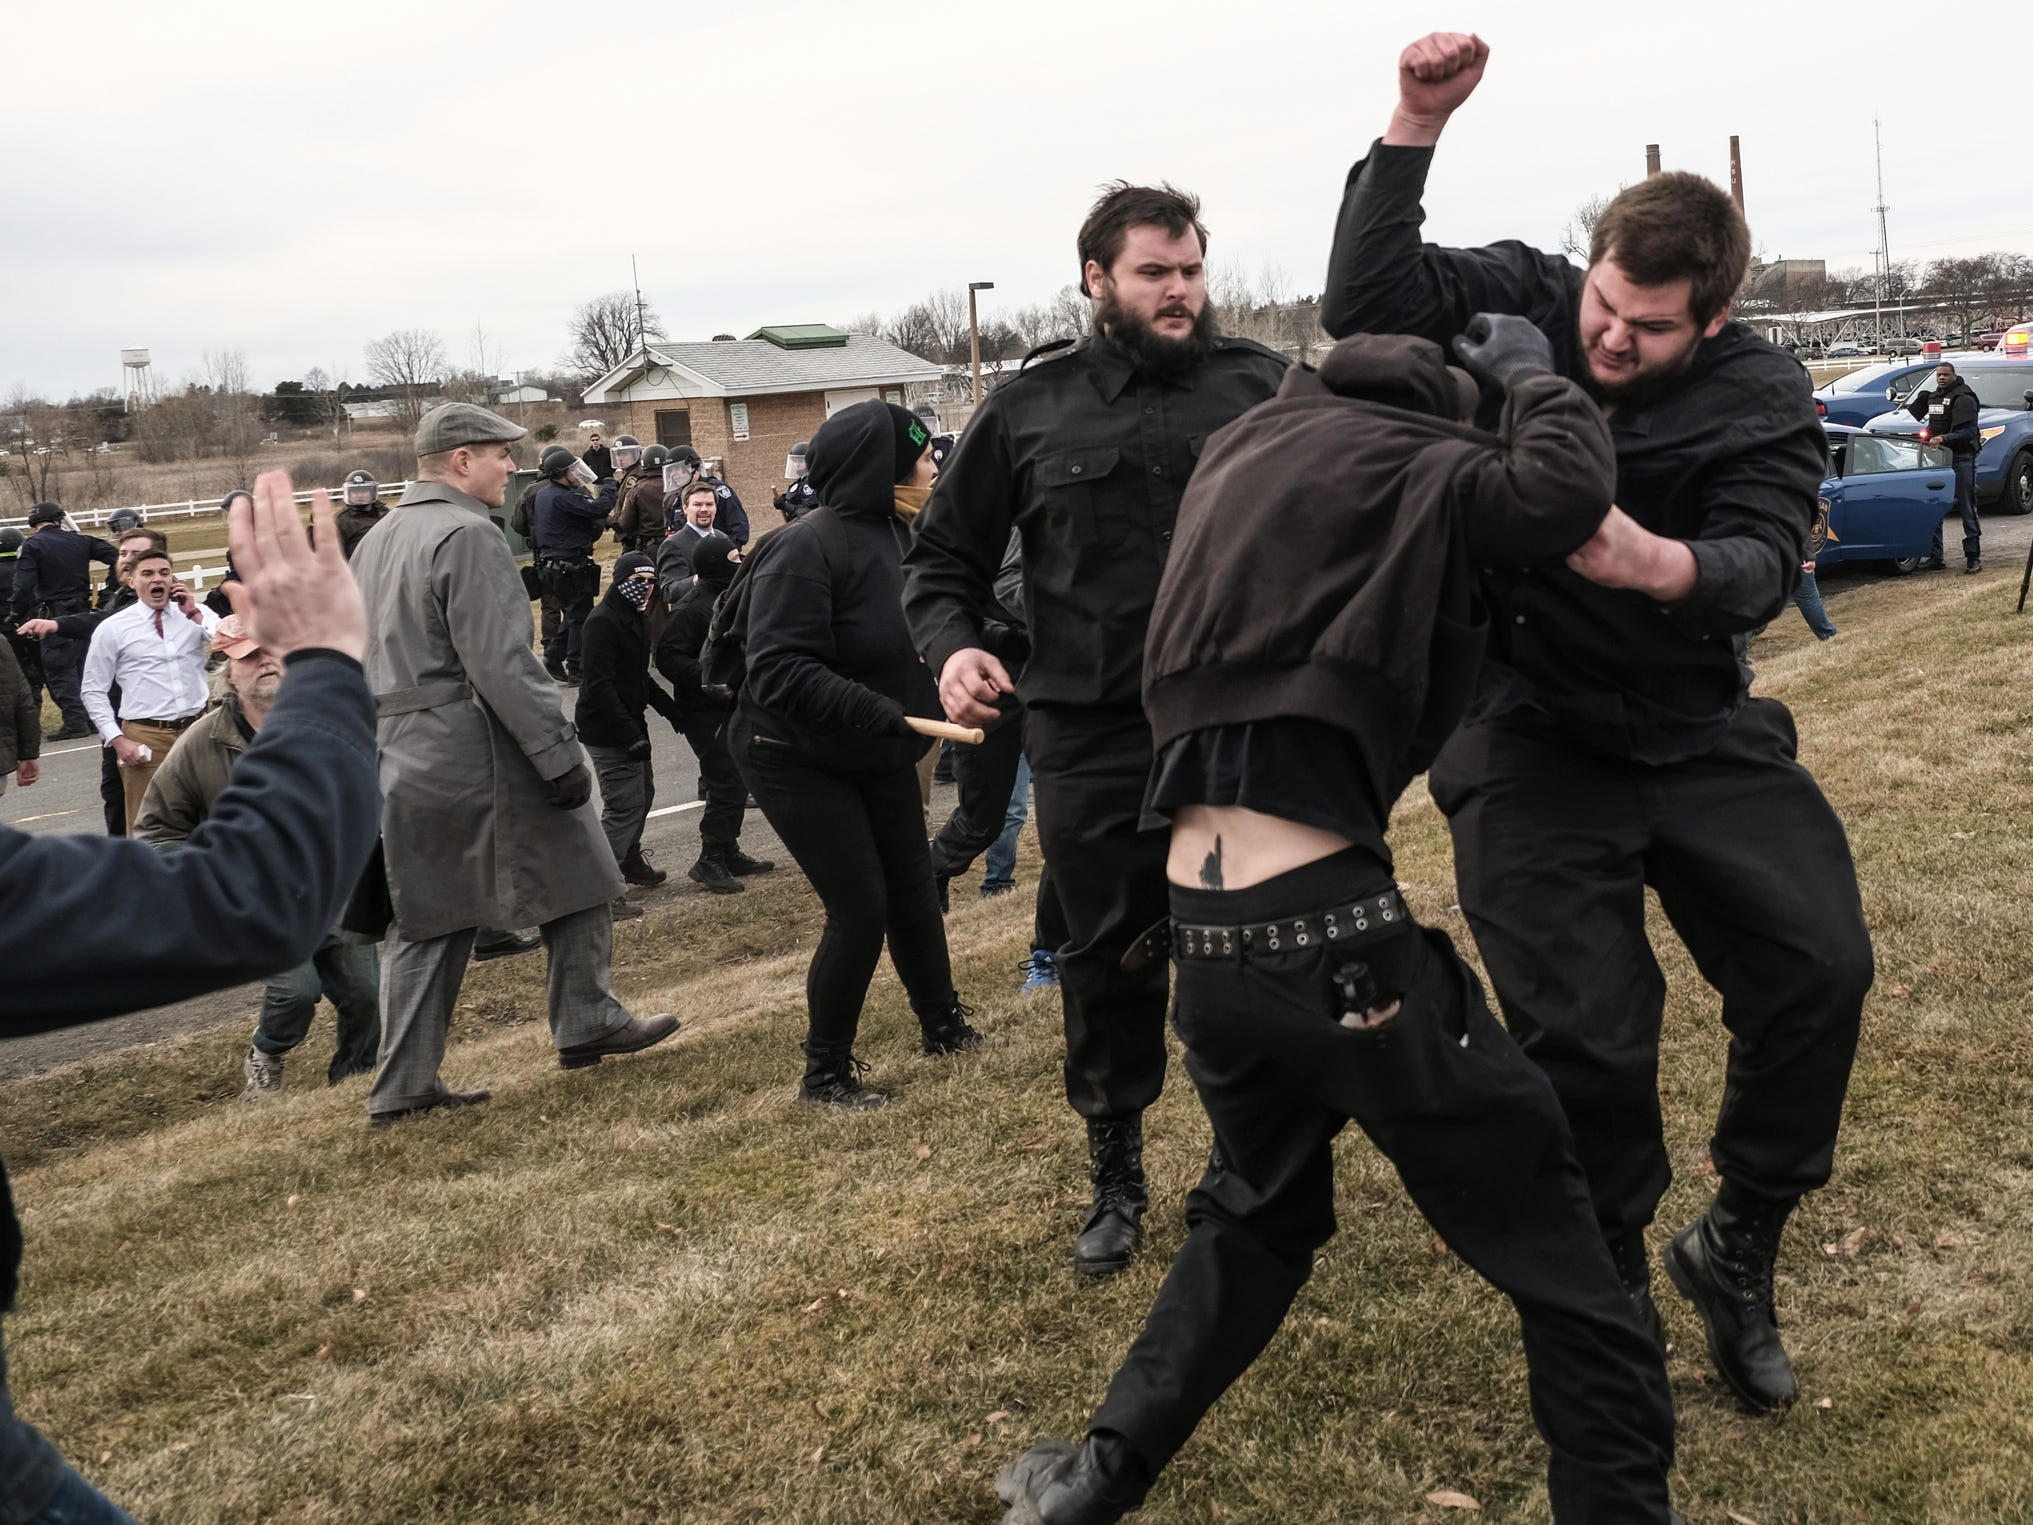 Protestors and supporters of Richard Spencer clash outside of the MSU Pavilion for Agriculture and Livestock Education on the Michigan State University campus in Lansing on Monday, March 5, 2018 where Spencer is set to speak to supporters.